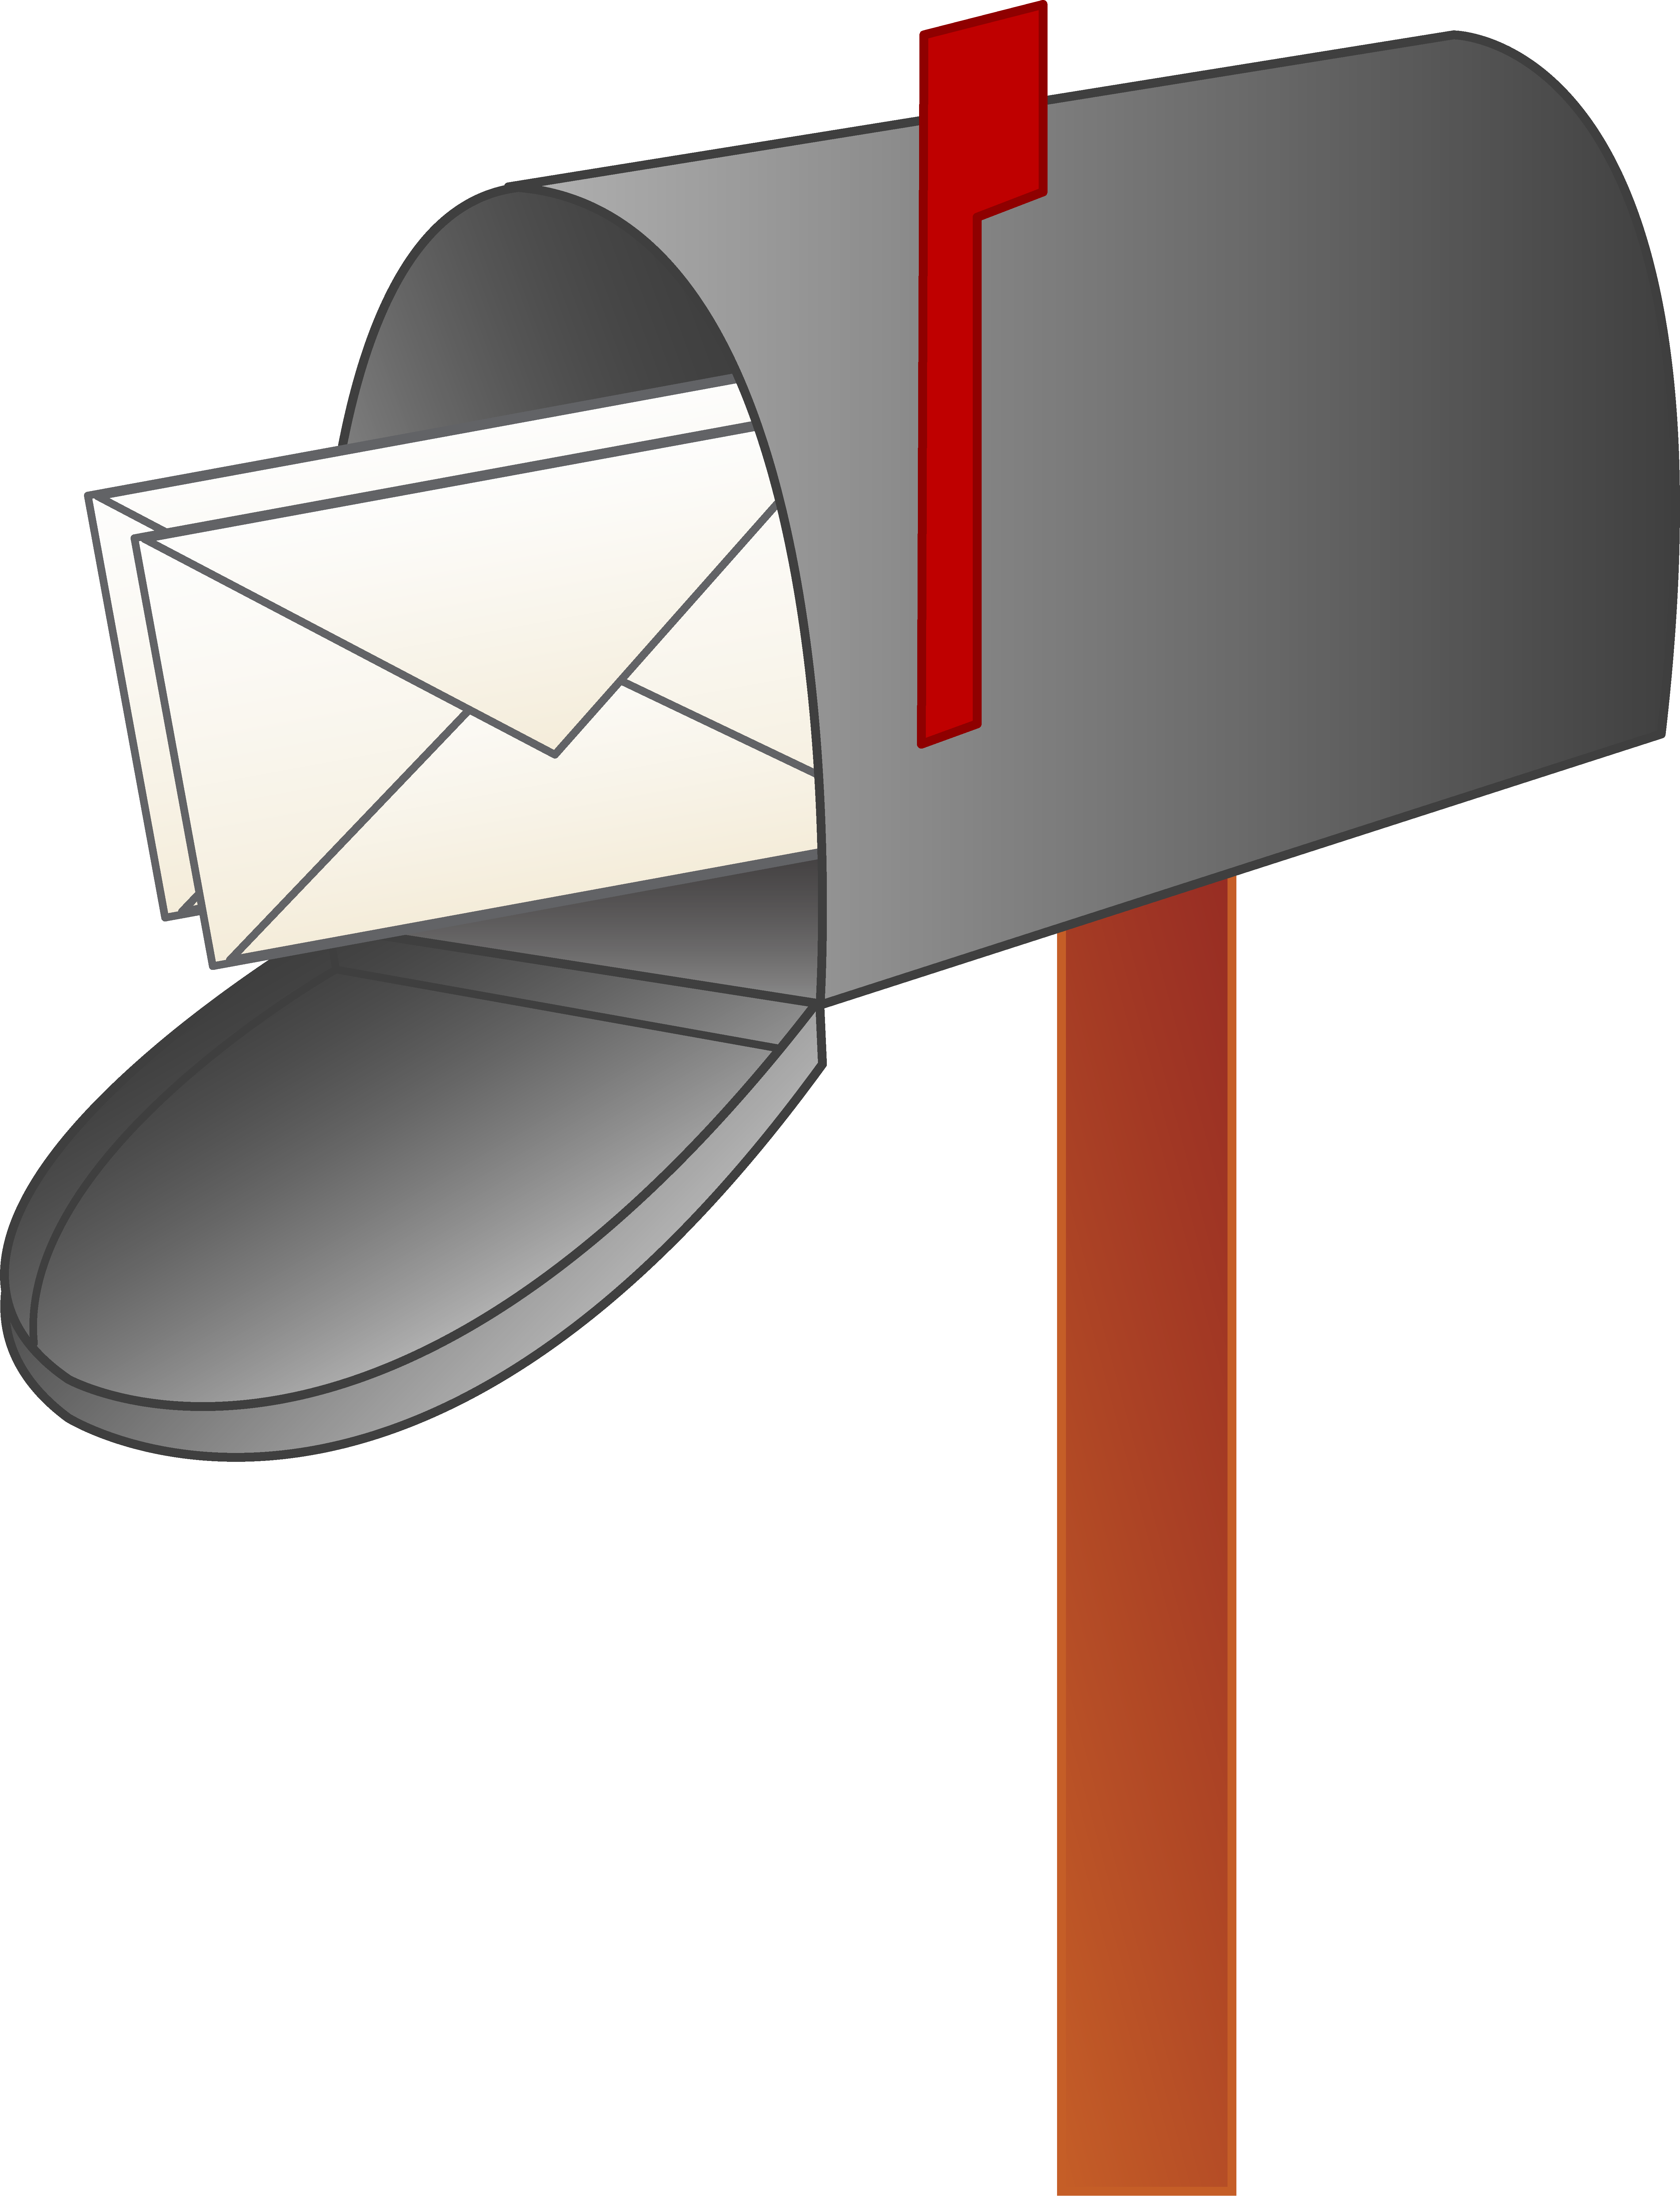 Mailbox Clipart Free.